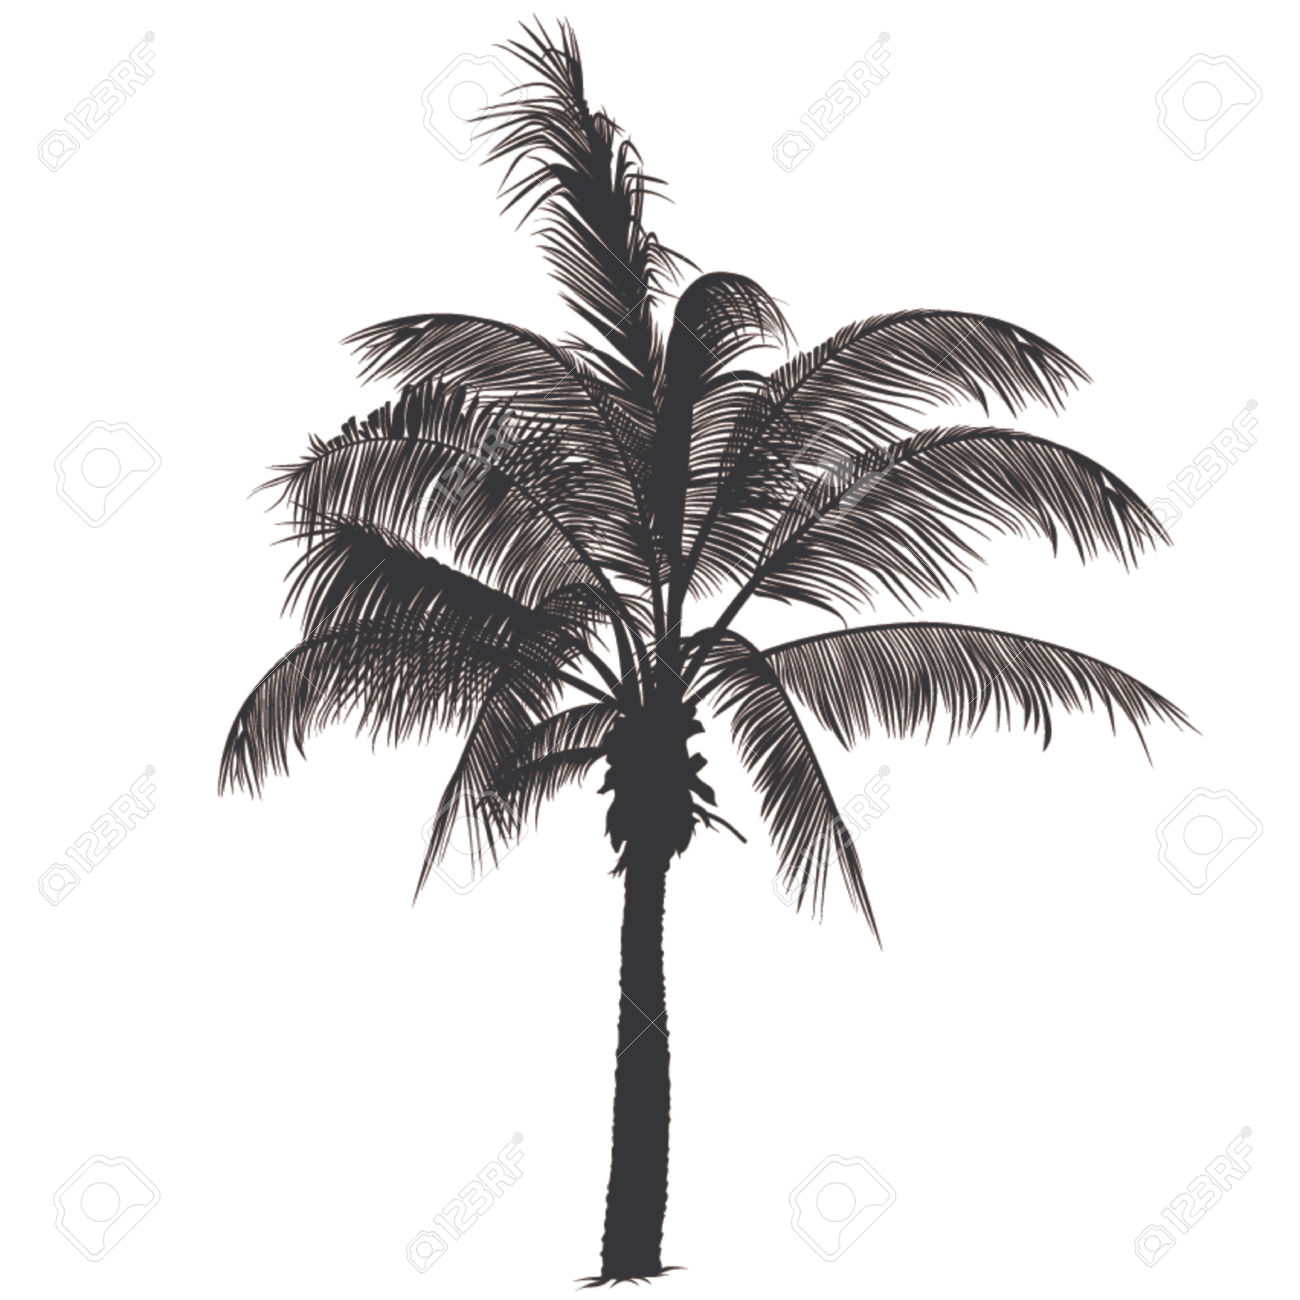 Palm tree root clipart #3